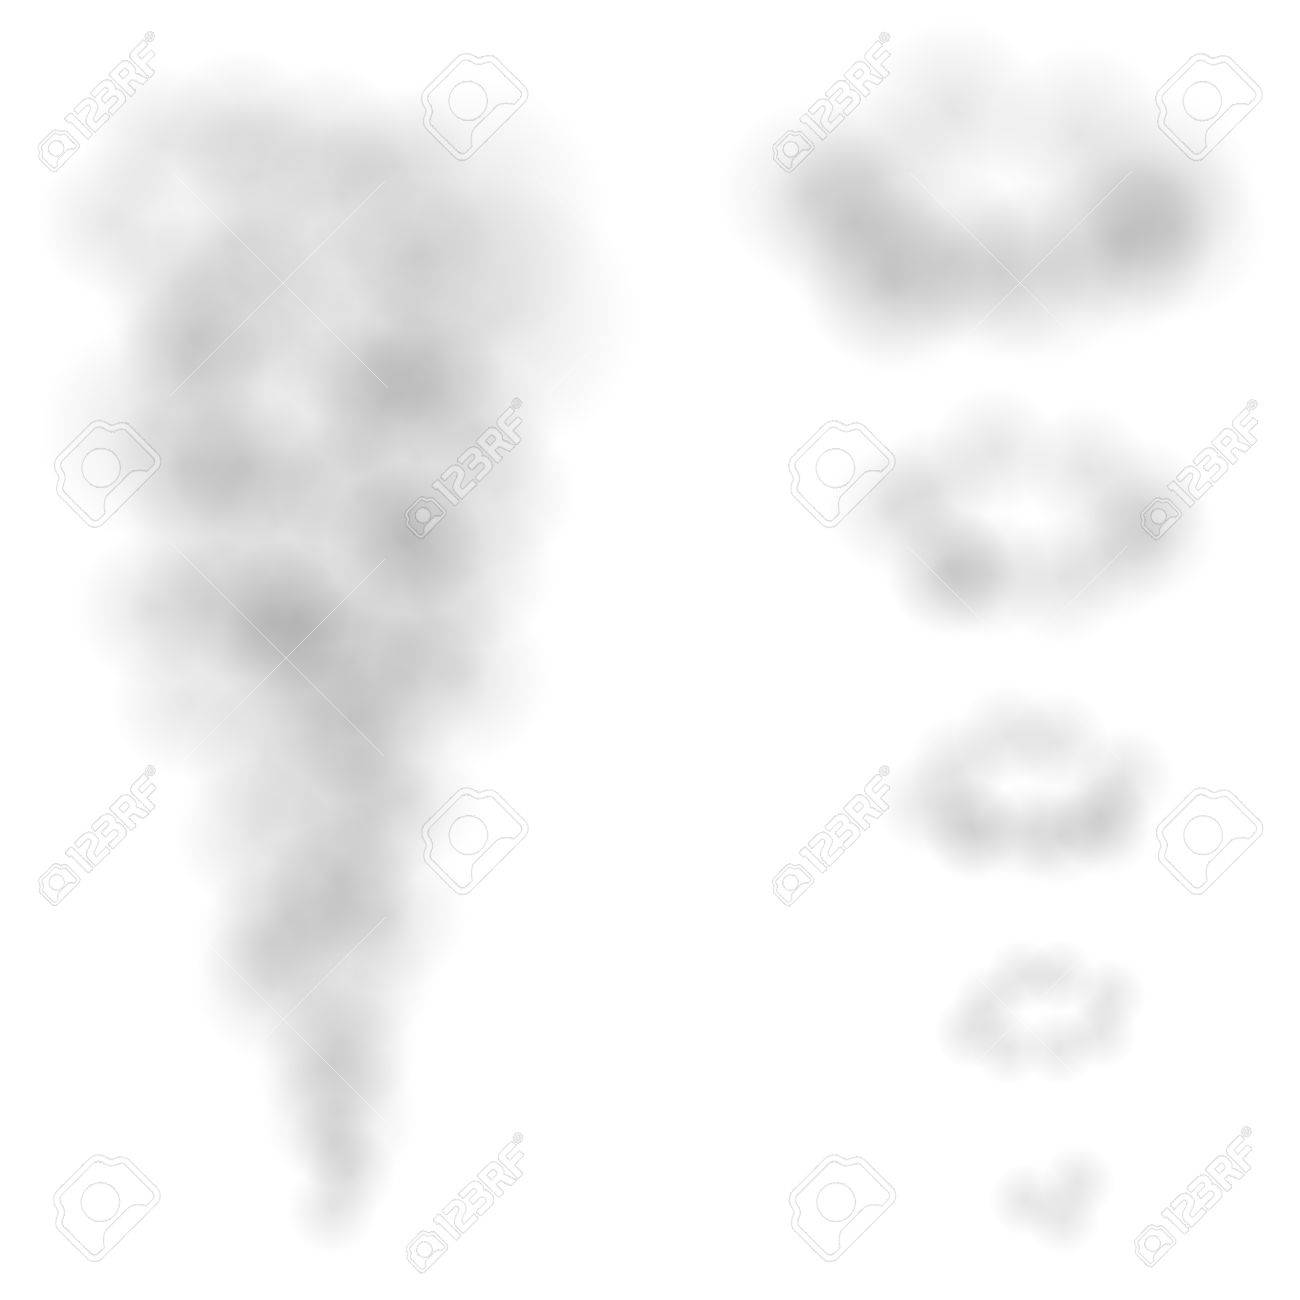 Vector smoke puffs and rings isolated on white background. Stock Vector - 6523893